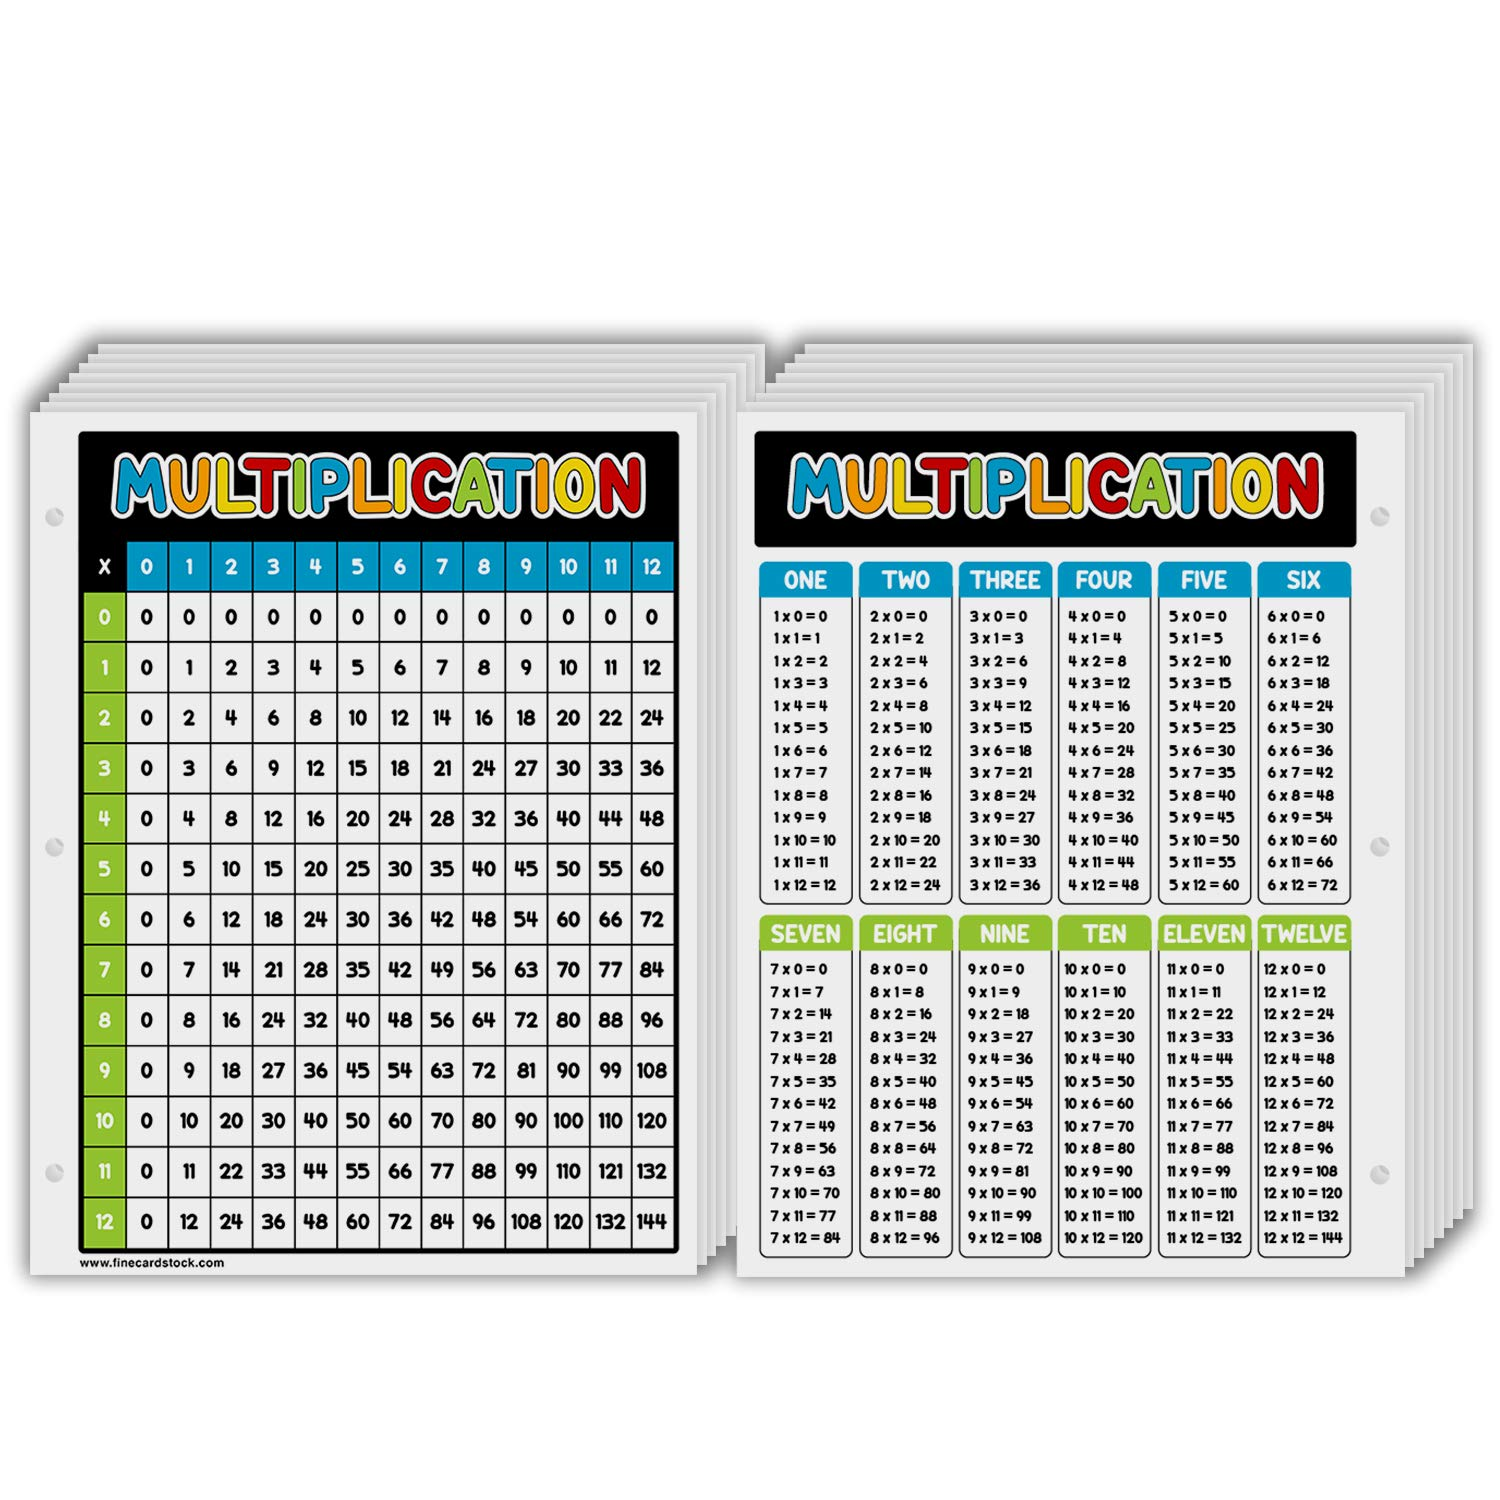 """Education Multiplication Chart Table Poster – Great Cards for Learning School Children of All Ages 